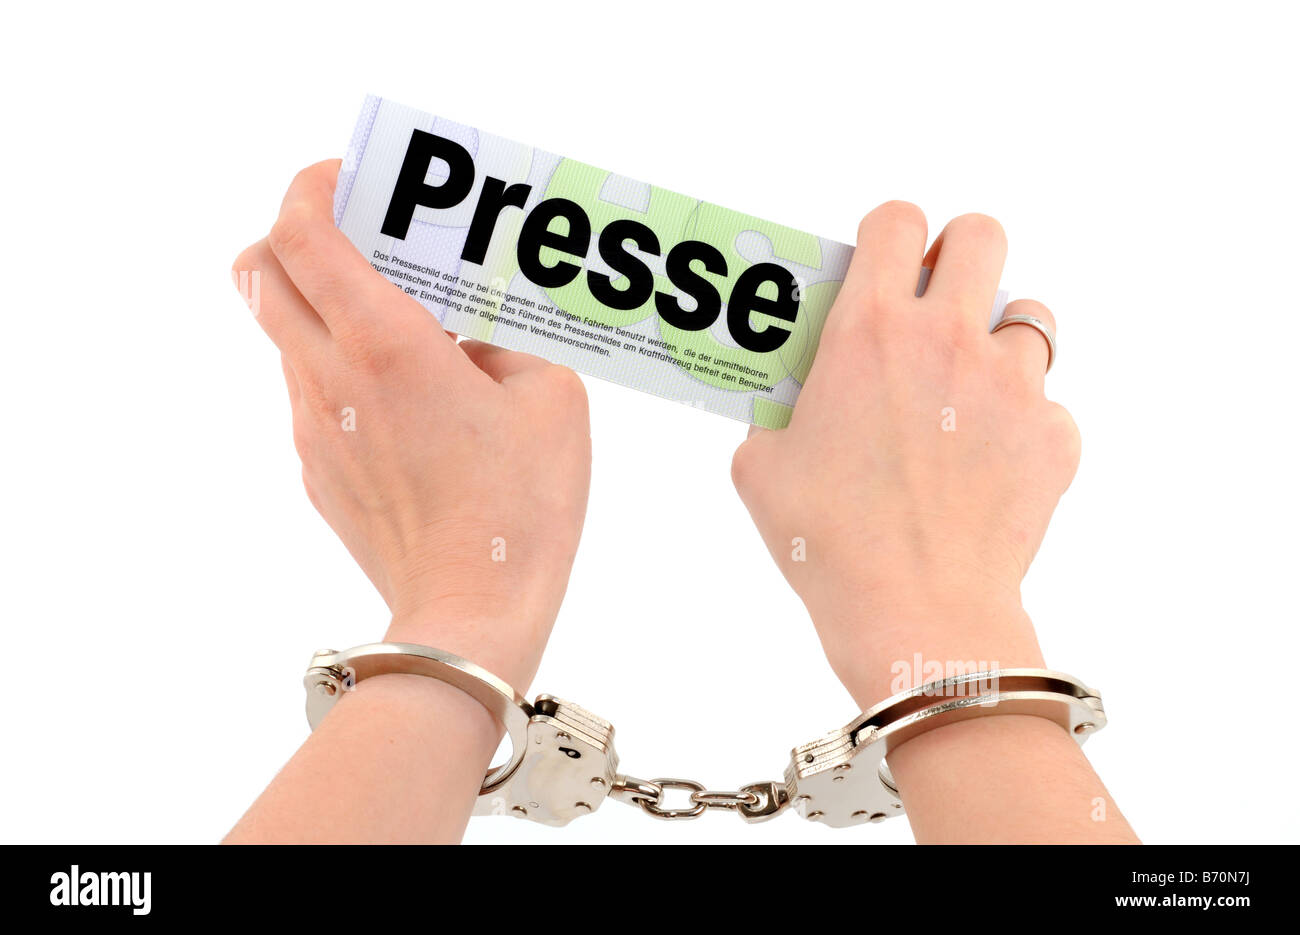 Freedom of the press - Stock Image